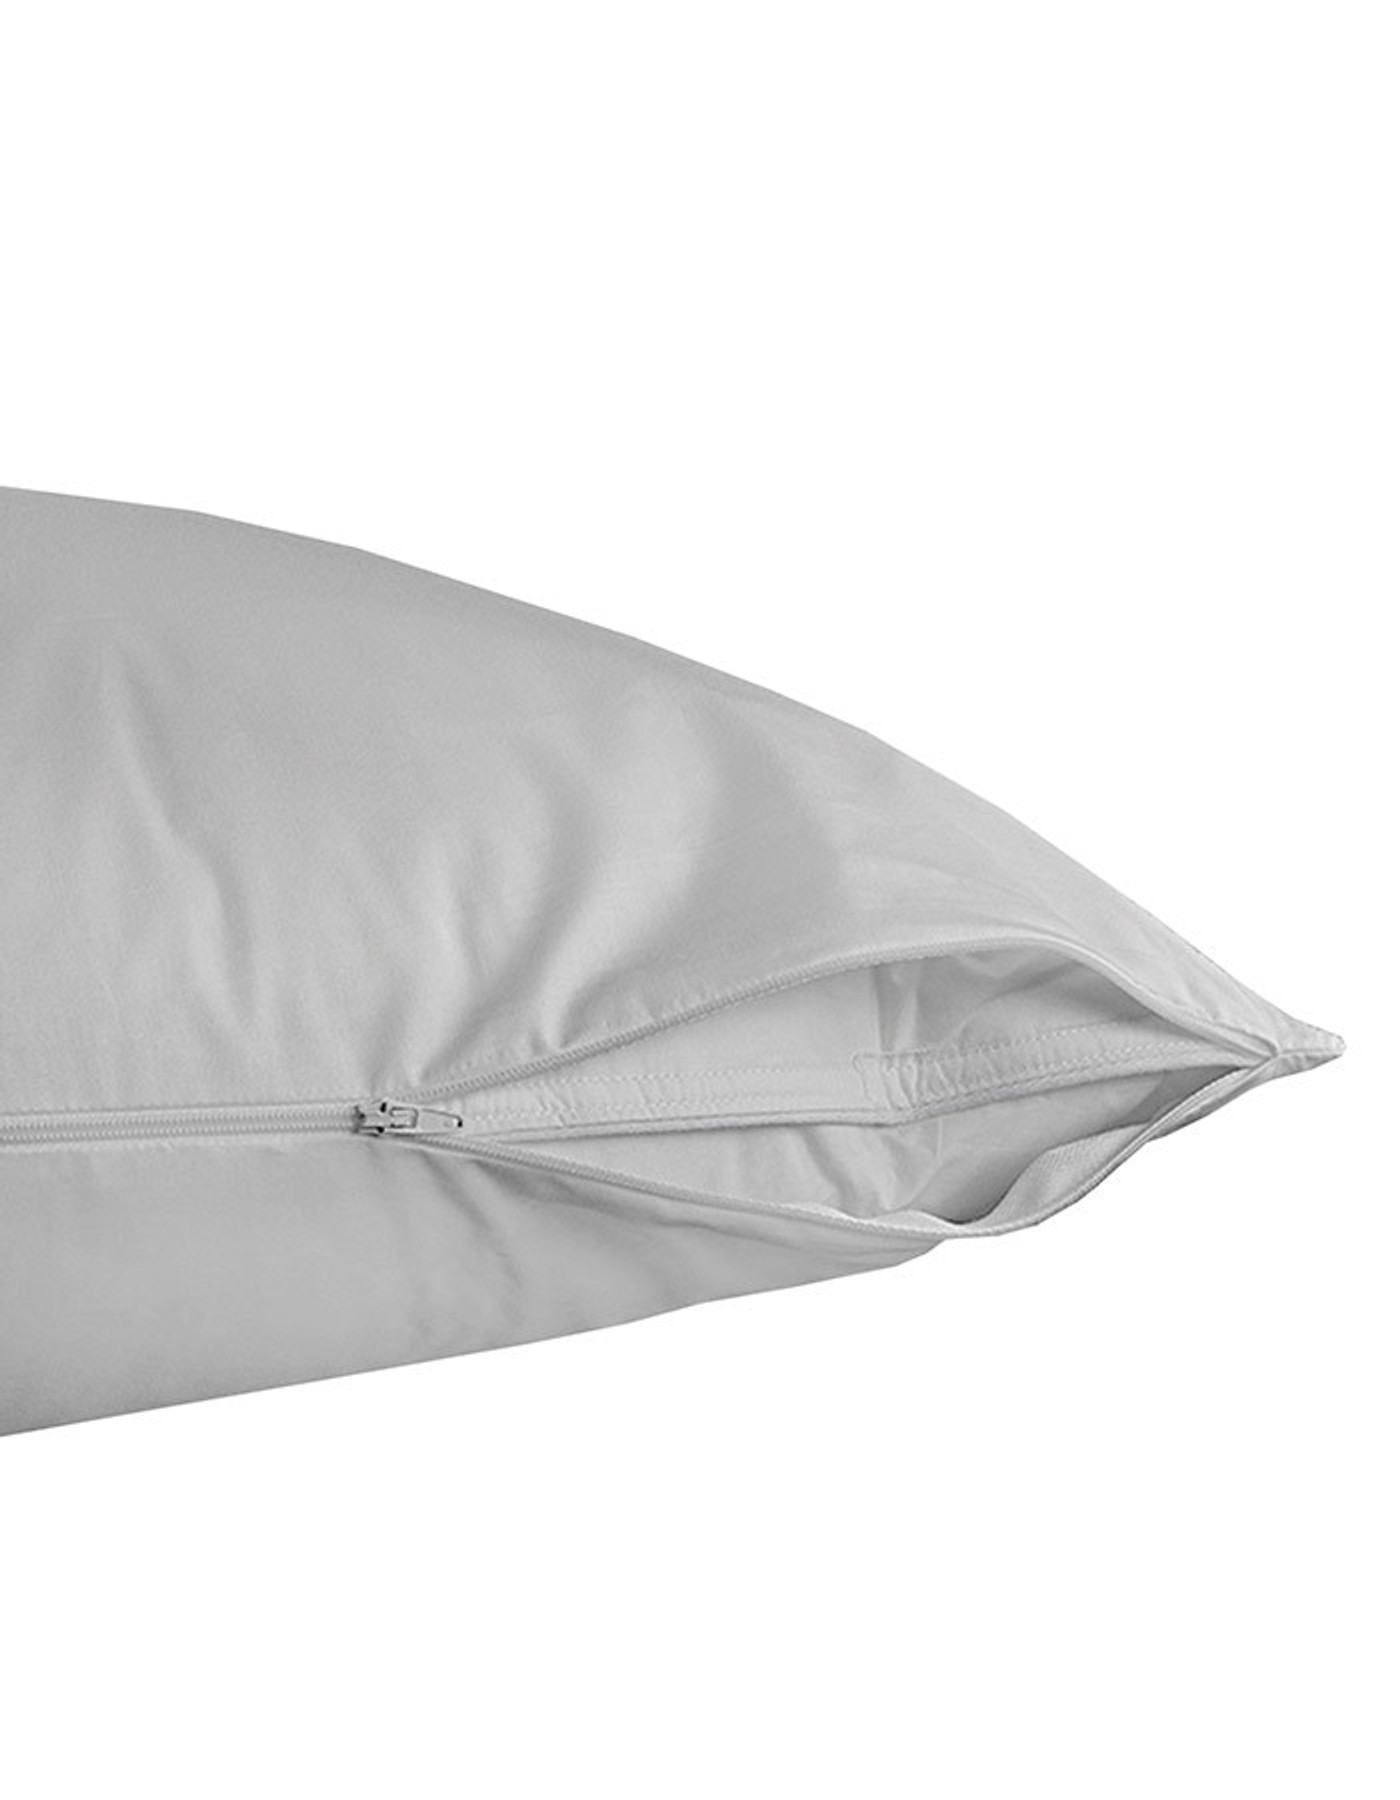 Protect Your Pillows With Luxury Cotton Pillow Protectors